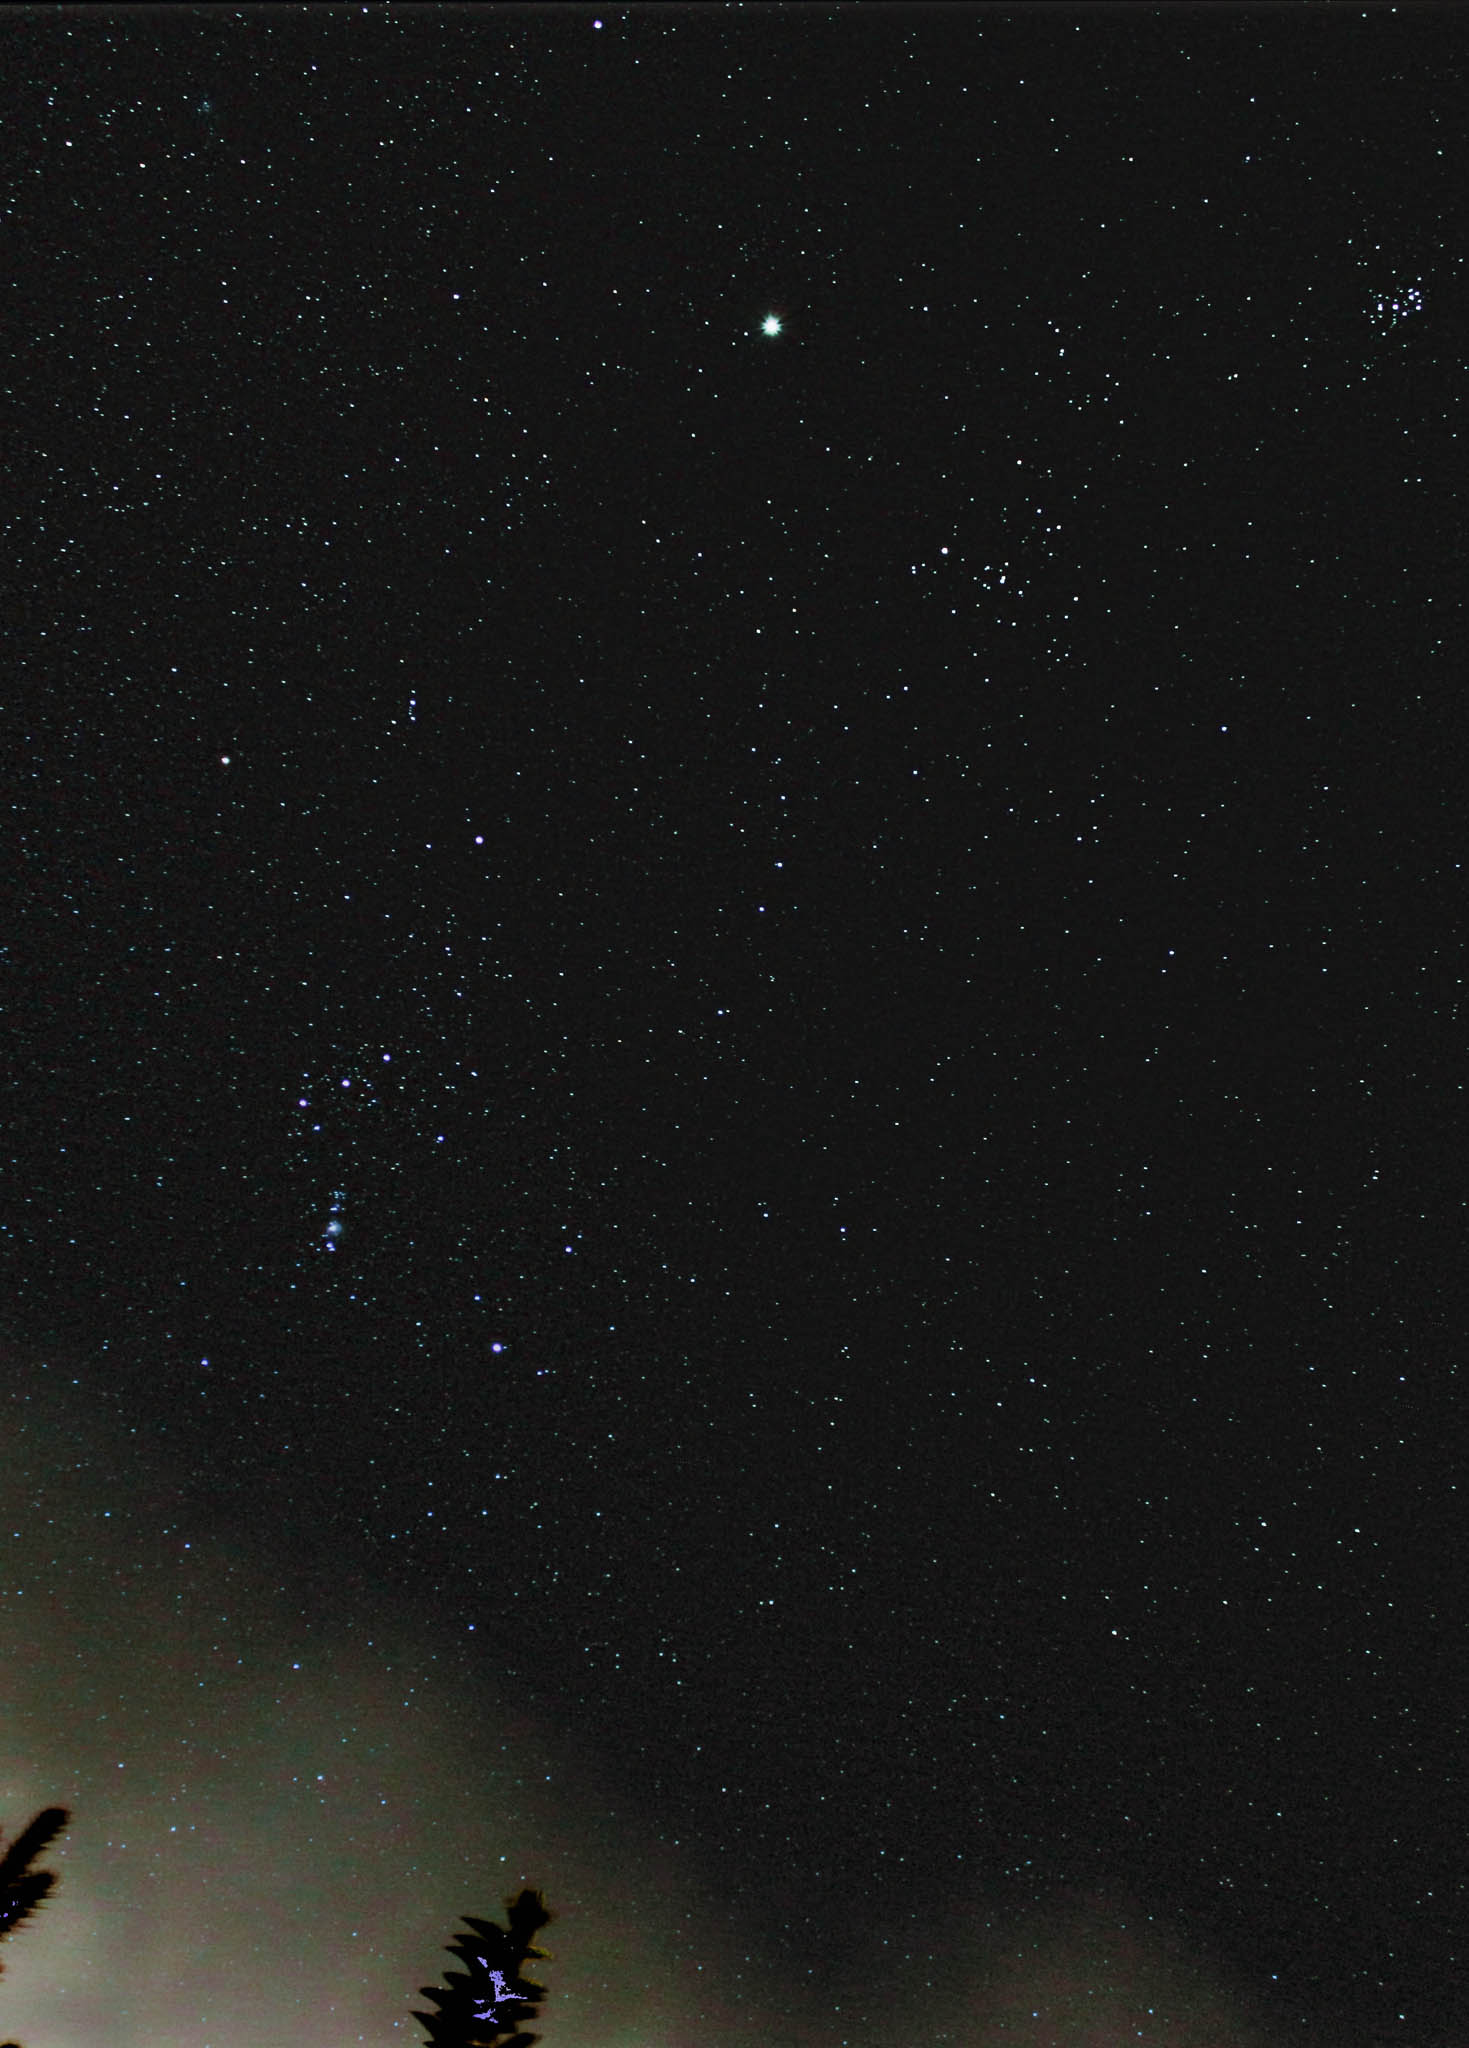 Orion, Pleiades and Jupiter